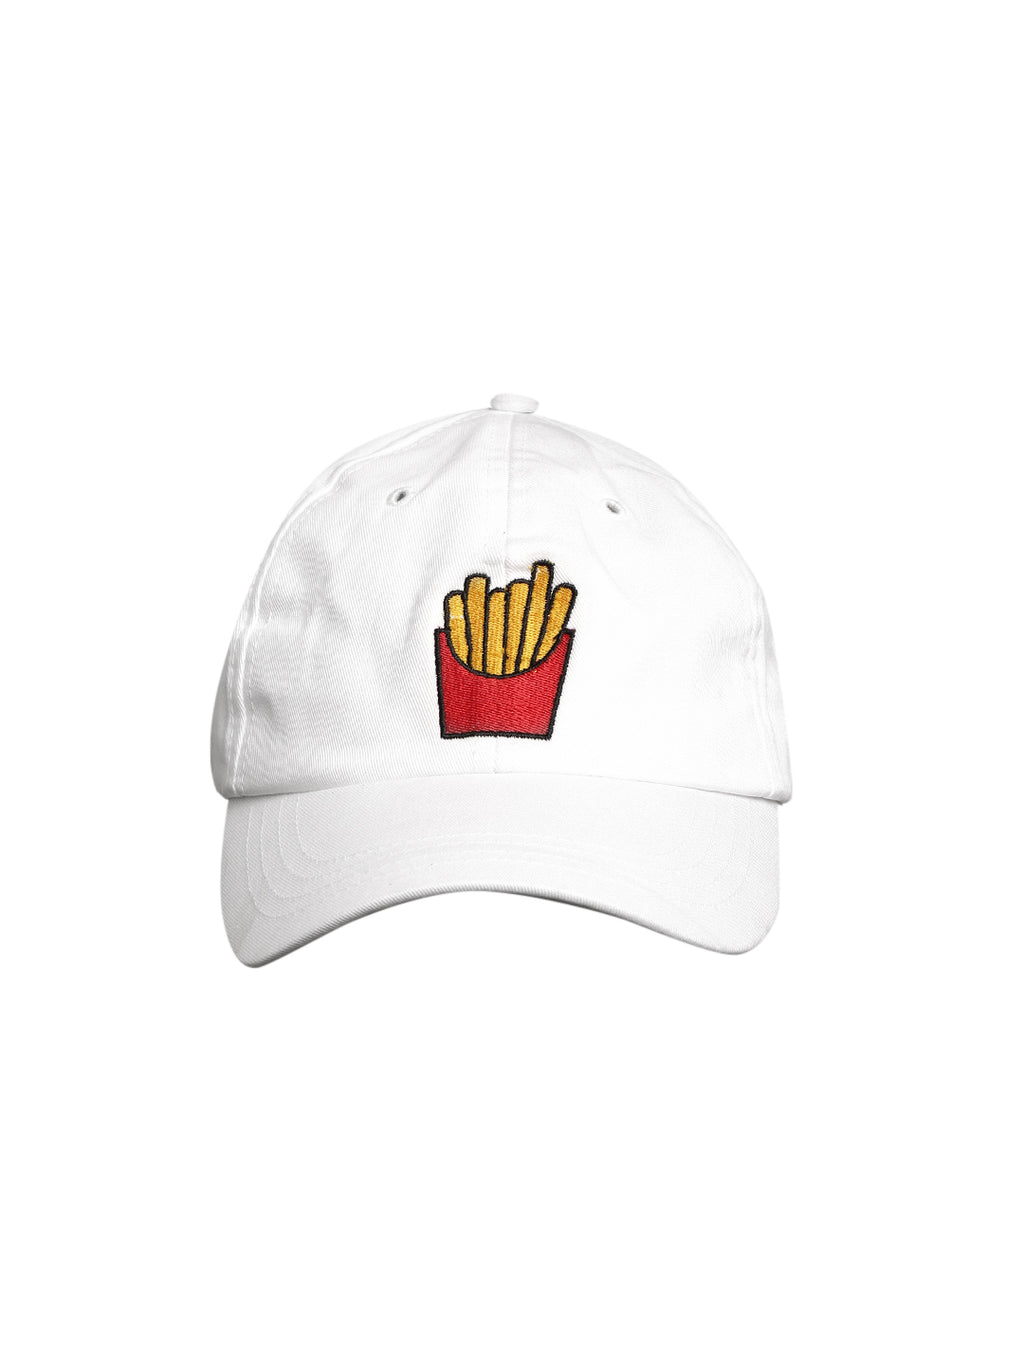 Blueberry french fries emebriodery white baseball cap